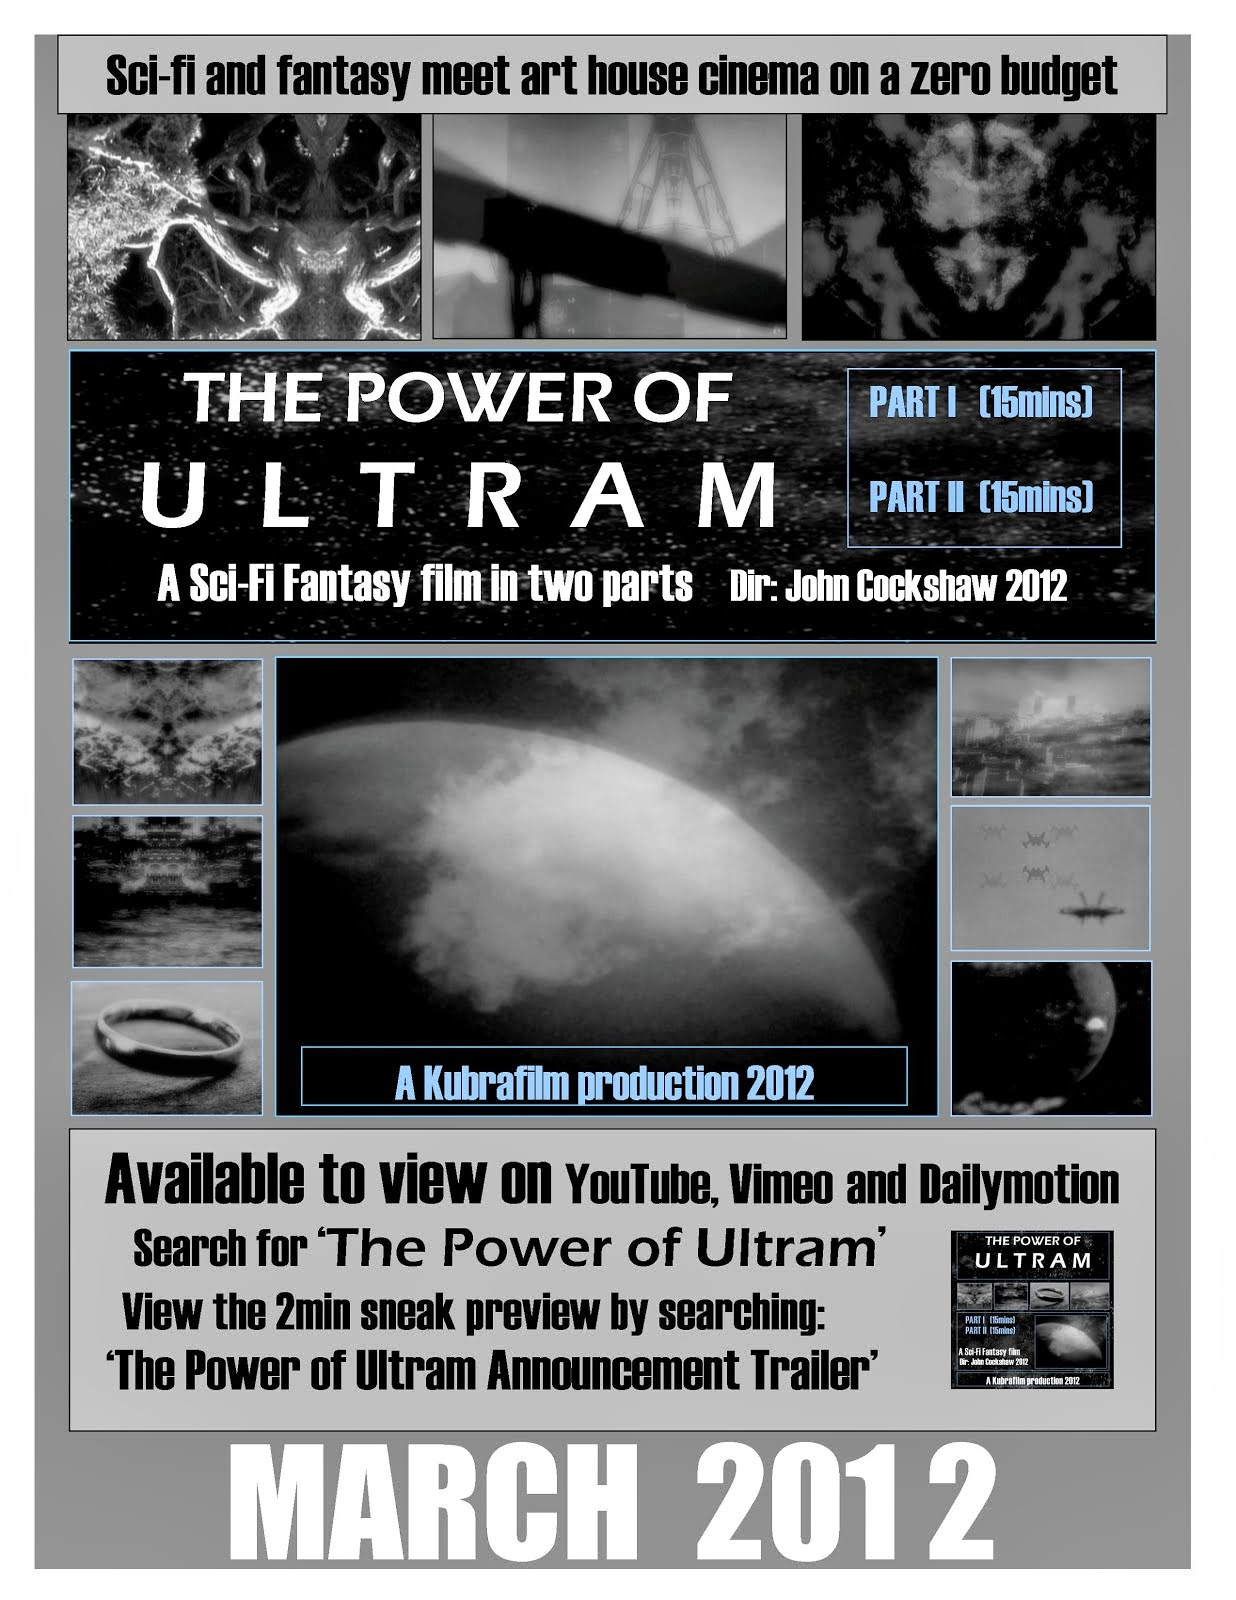 The Power of Ultram (Dir: J.Cockshaw, 2012)